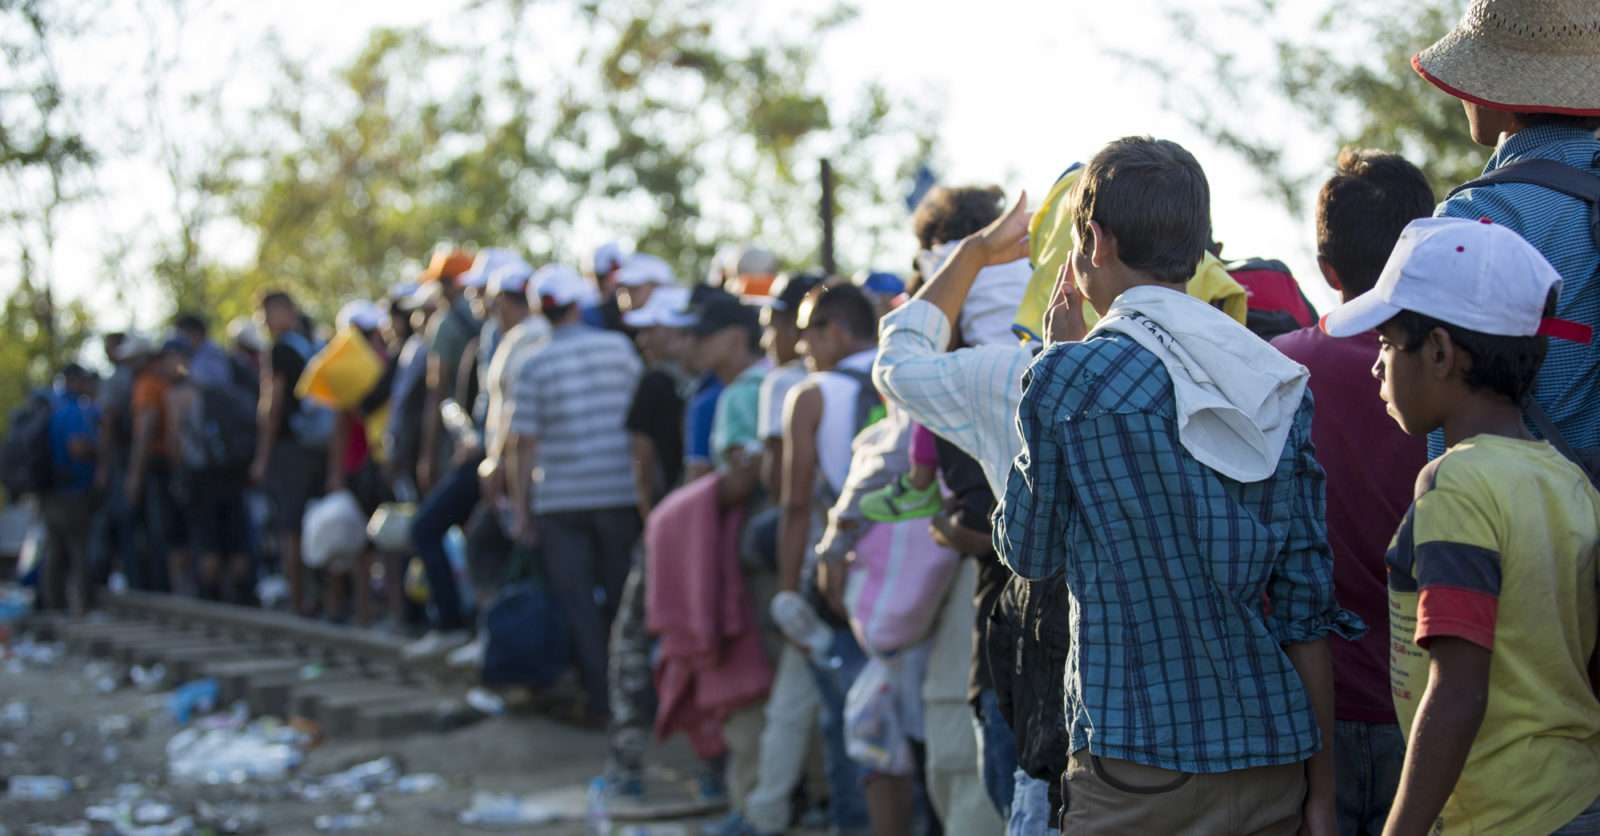 The European policy of closure in the face of asylum seekers undermines human rights values